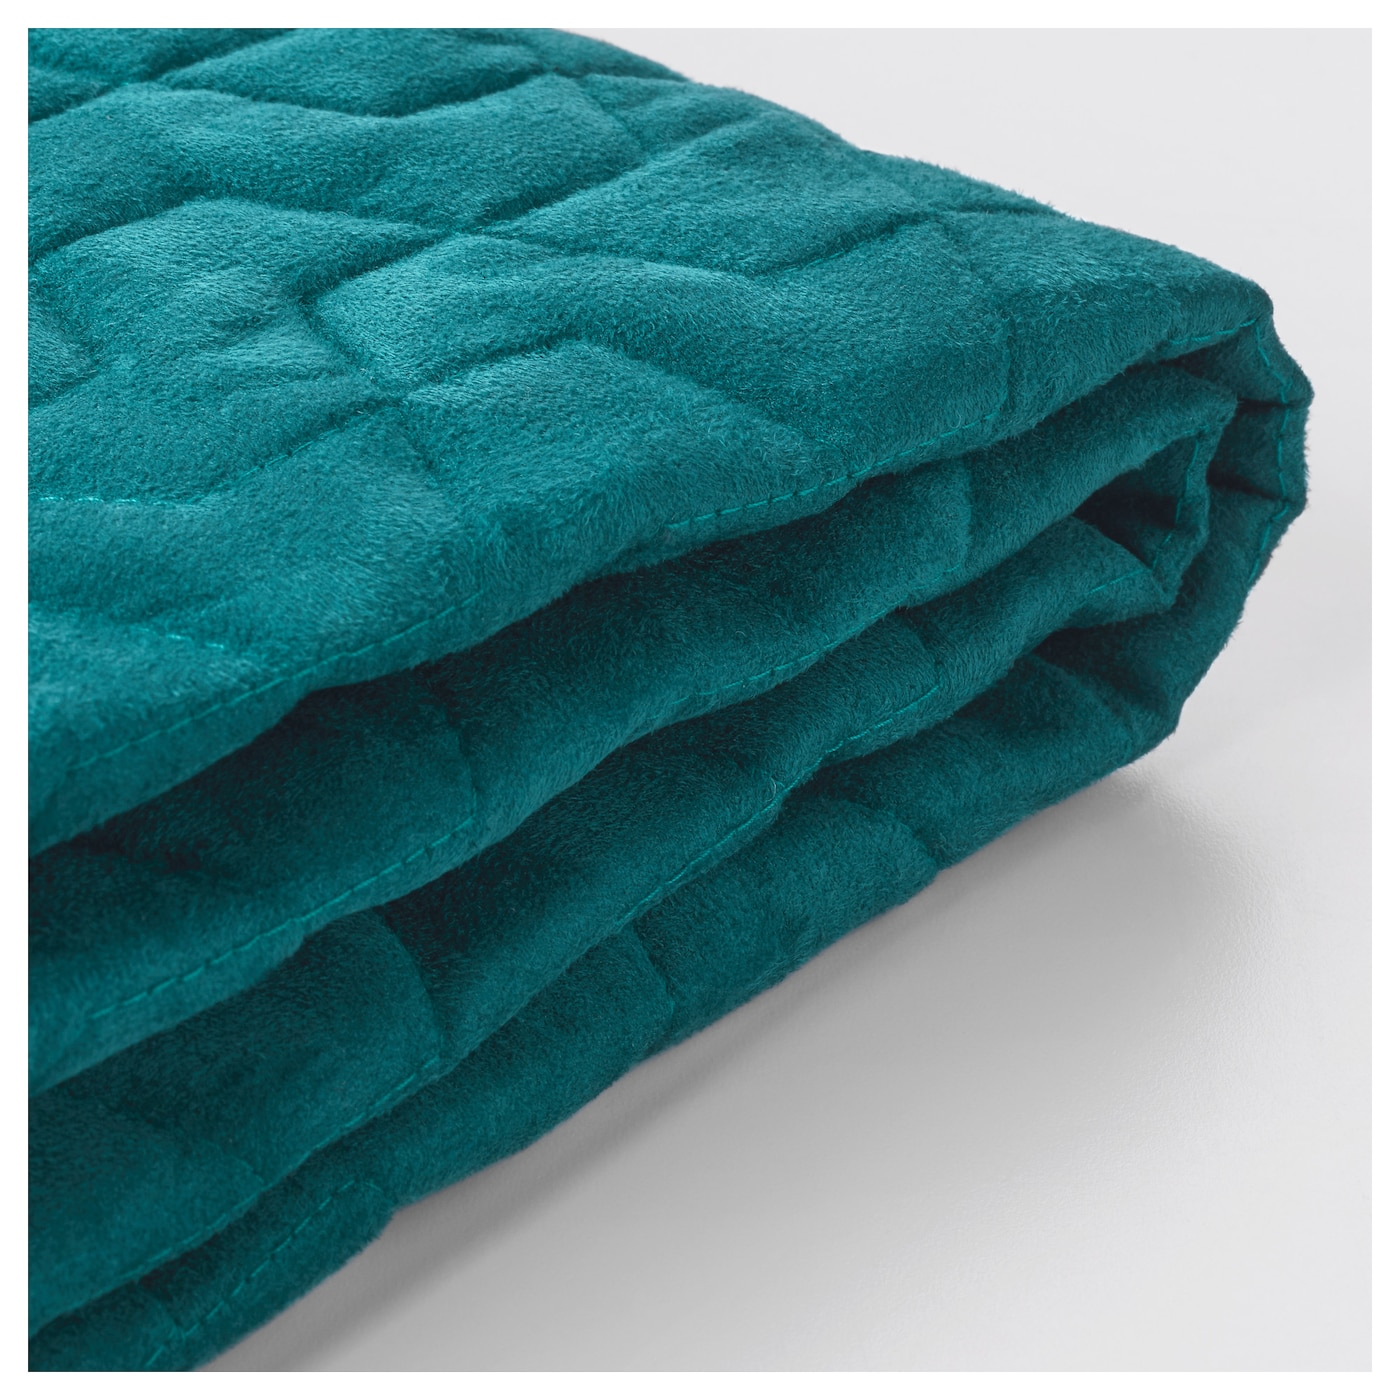 Lycksele two seat sofa bed cover vallarum turquoise ikea - Canape turquoise ikea ...